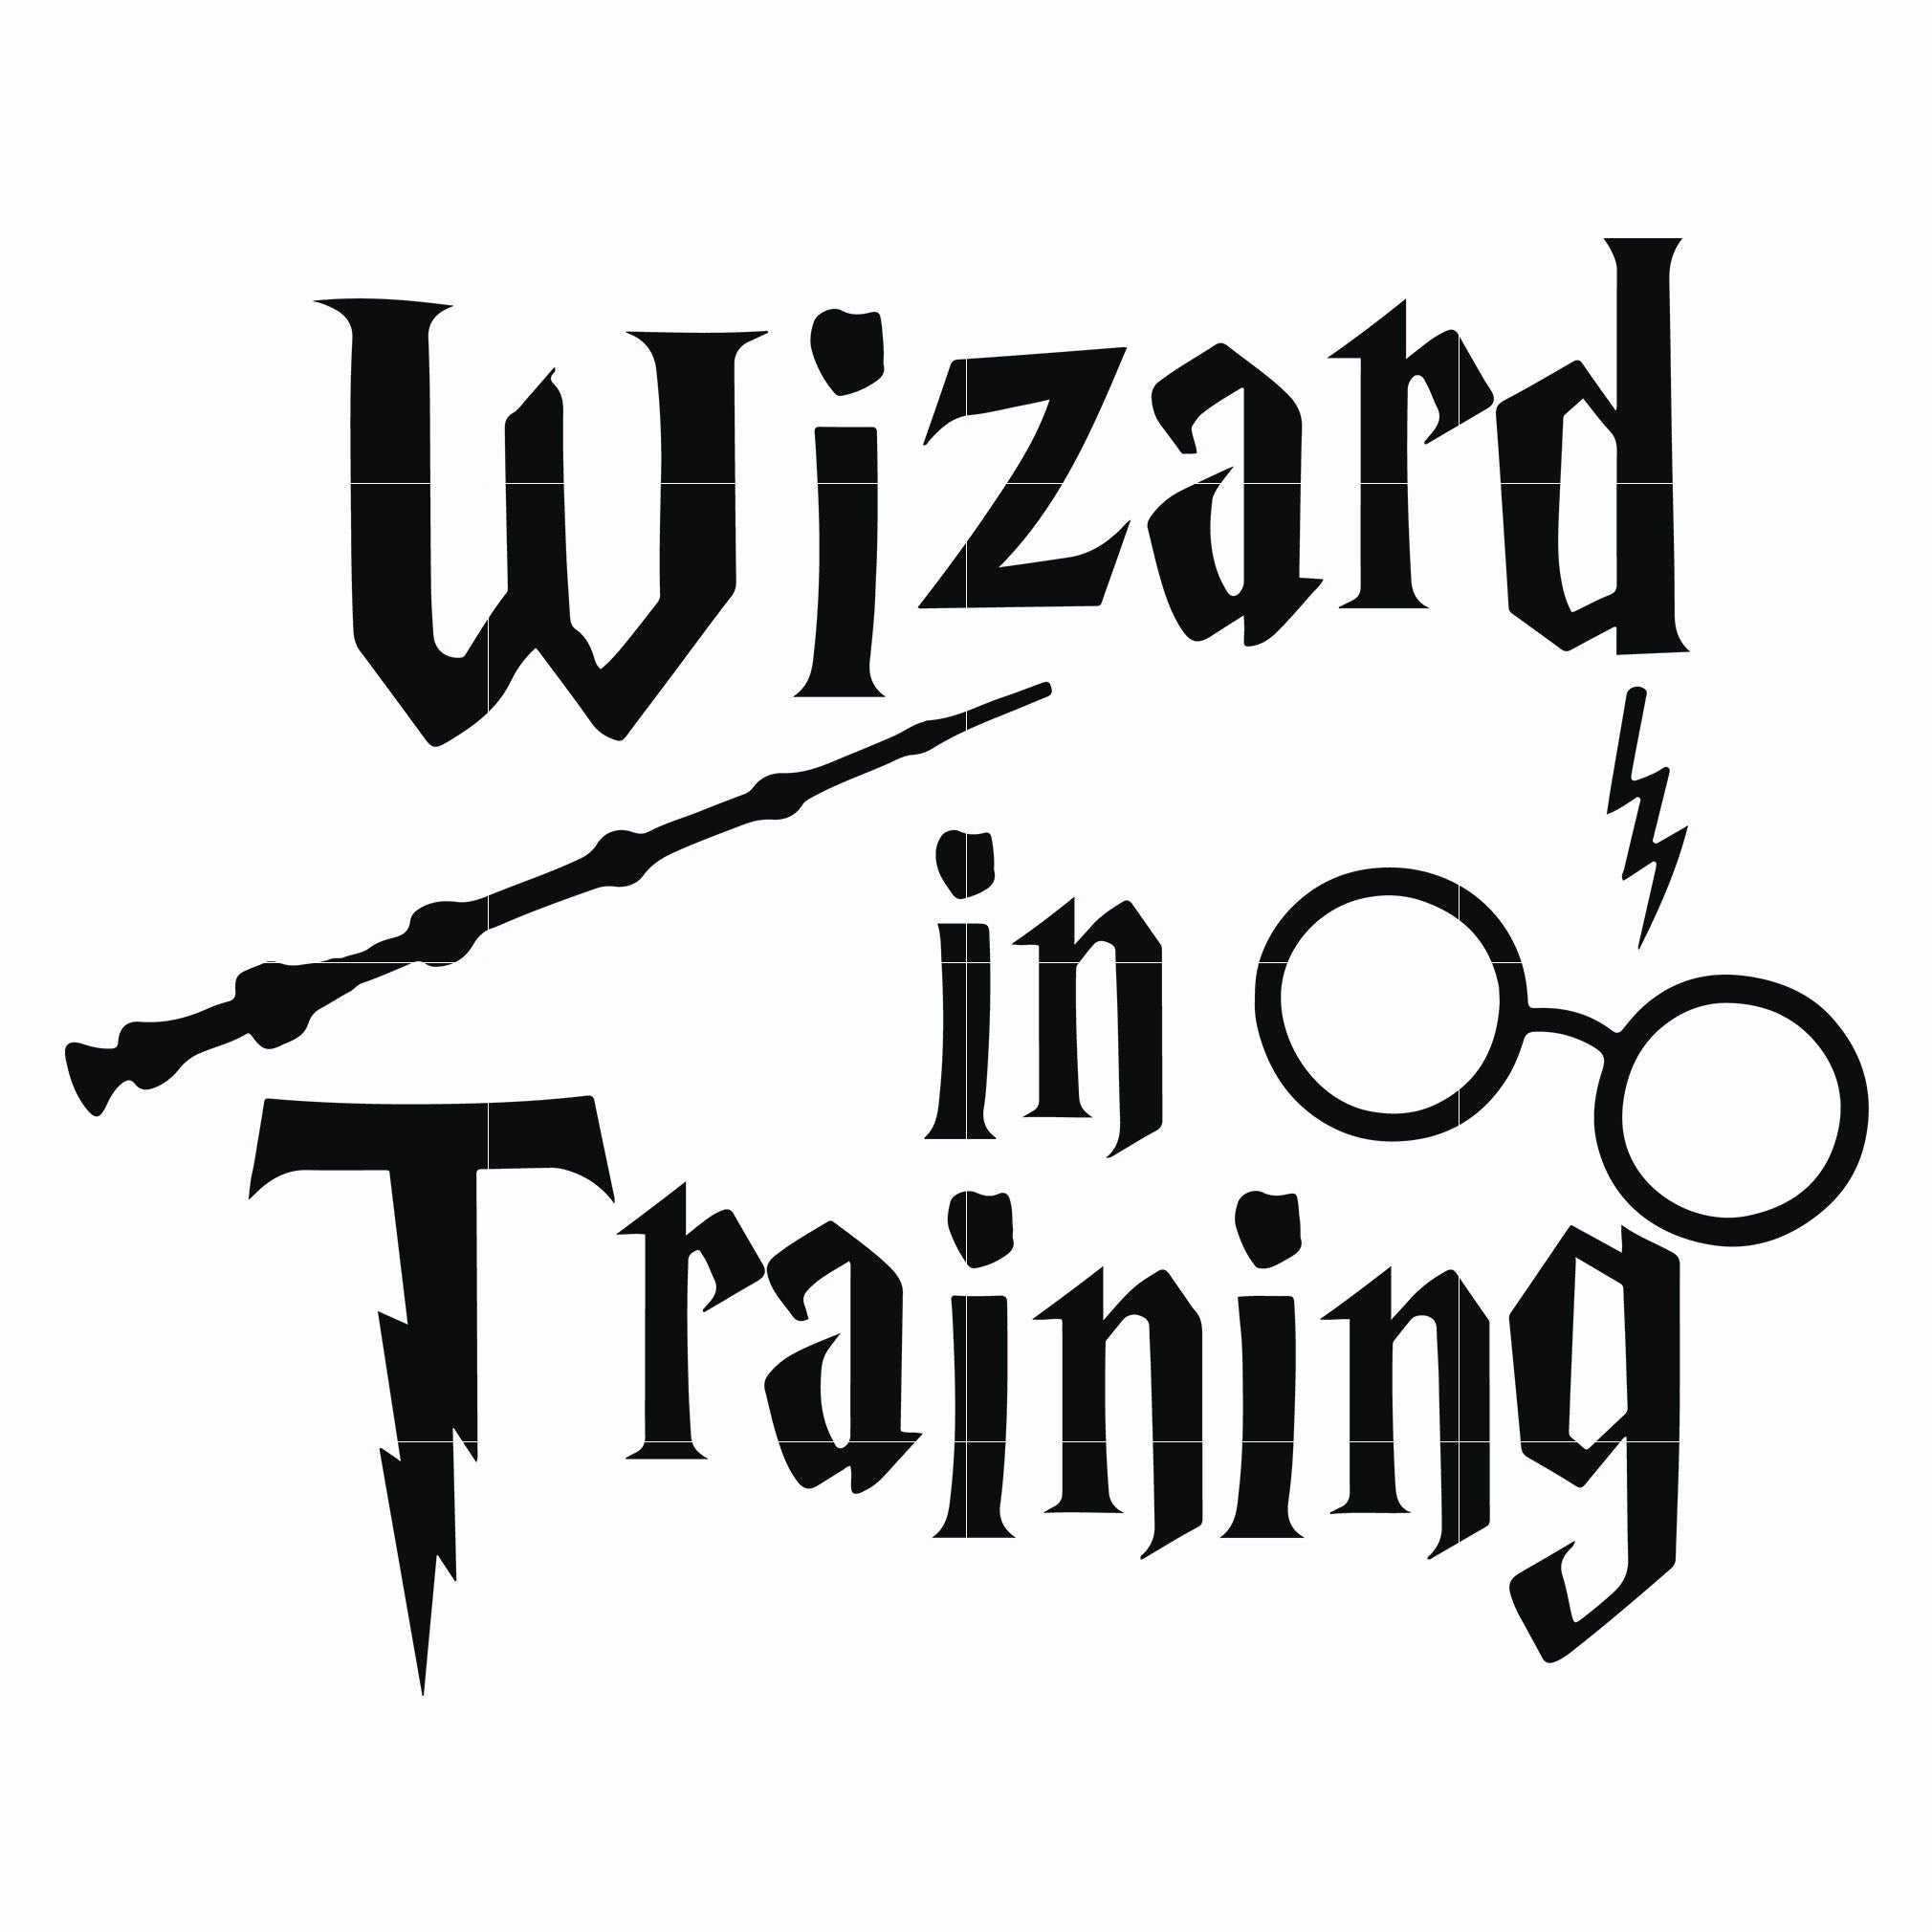 Wizard in training svg, harry potter svg, potter svg for cut, svg, dxf, eps, png digital file